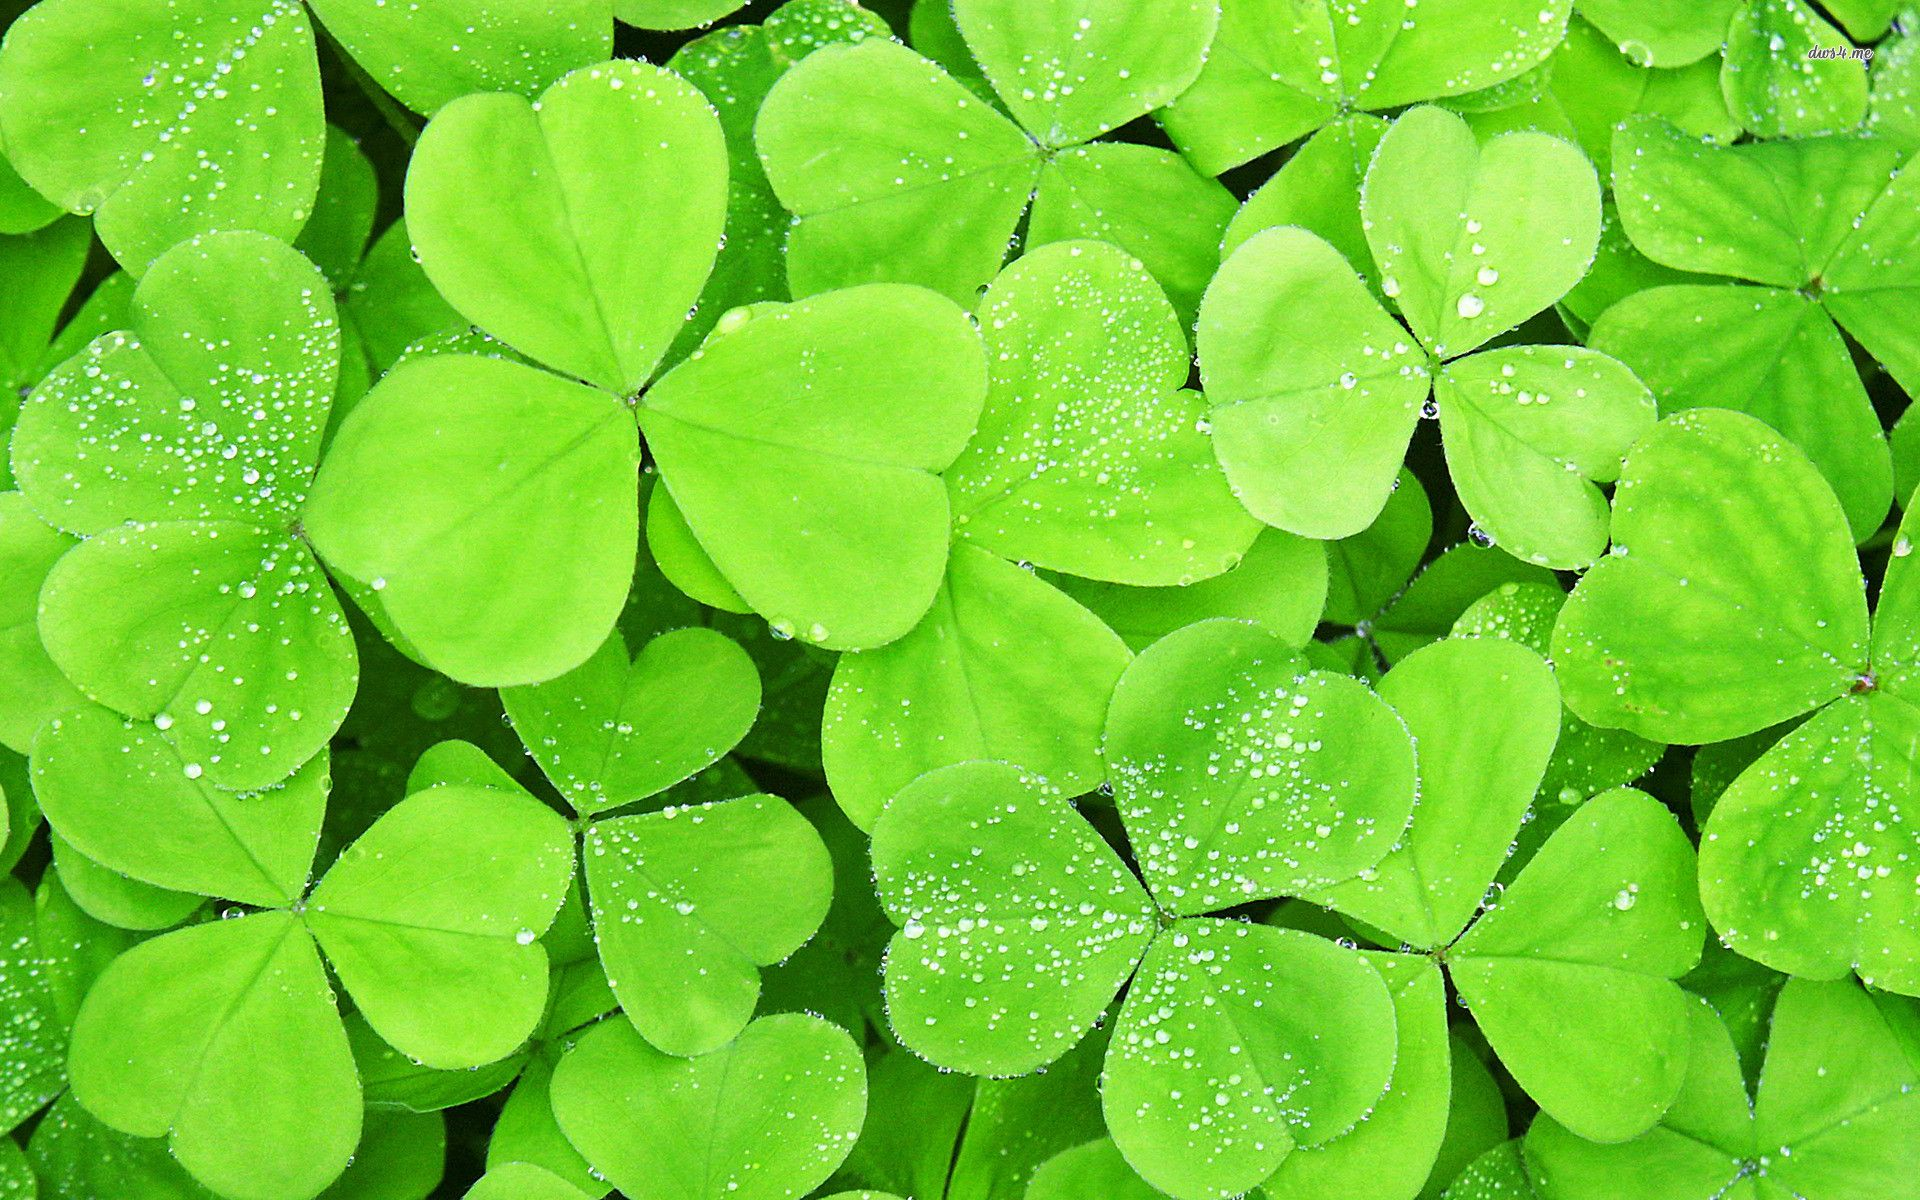 Four Leaf Clover Wallpapers Wallpaper Cave St Patrick Facts St Patrick S Day Wood Sorrel